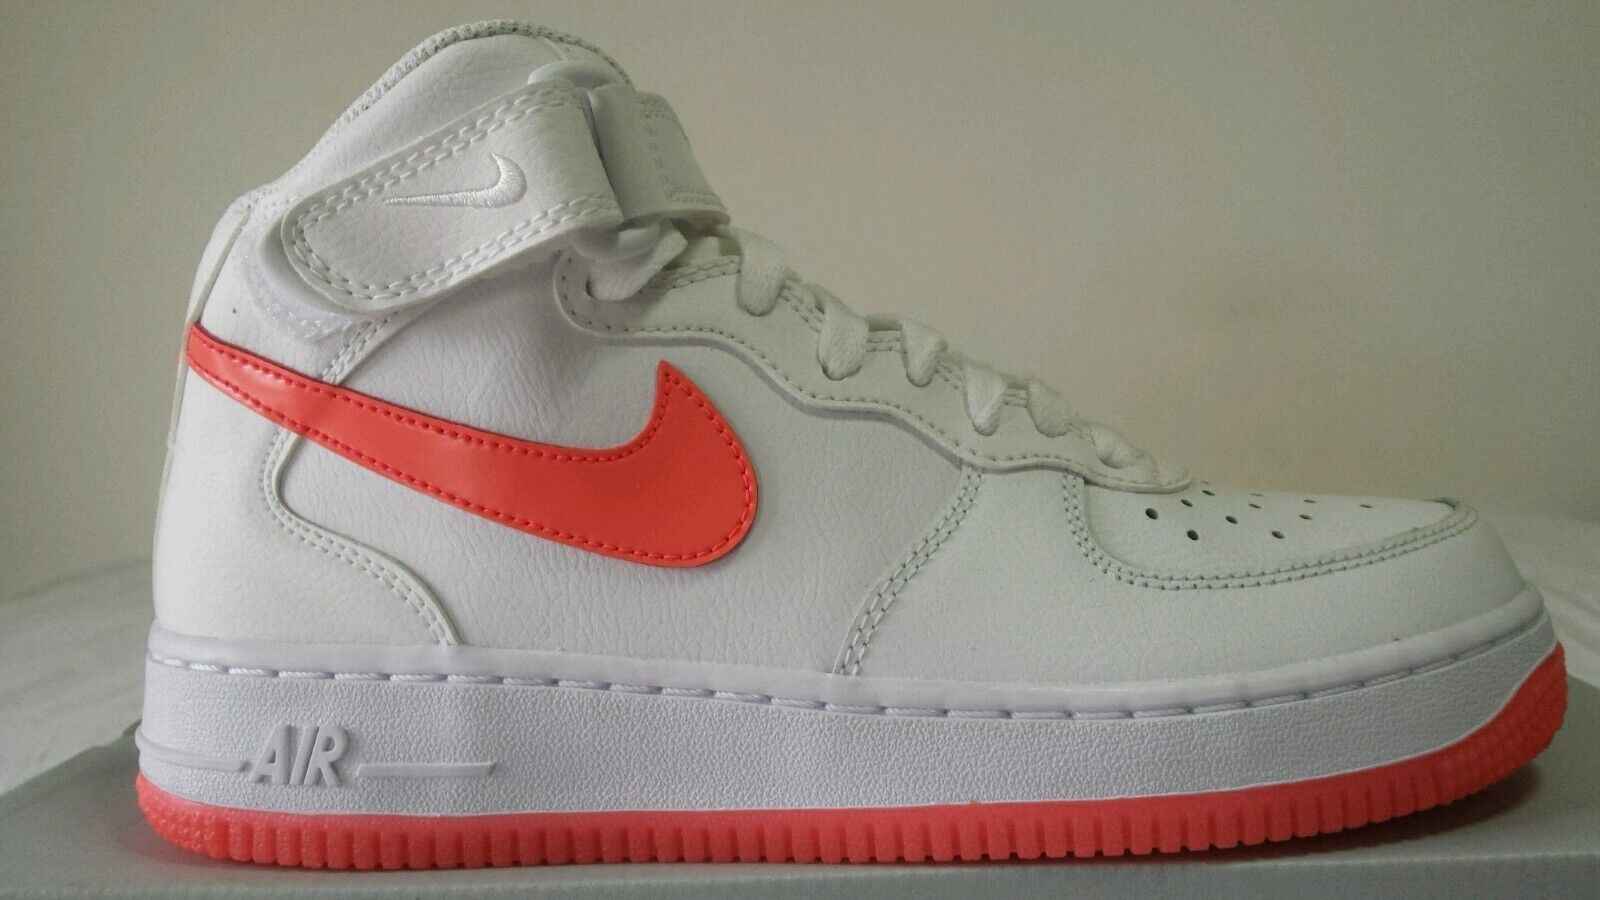 NIKE AIR MAX AIR FORCE 1 MID 97 WHITE MUSTACHE CORAL   38 SPECTACULAR OKKSPORT